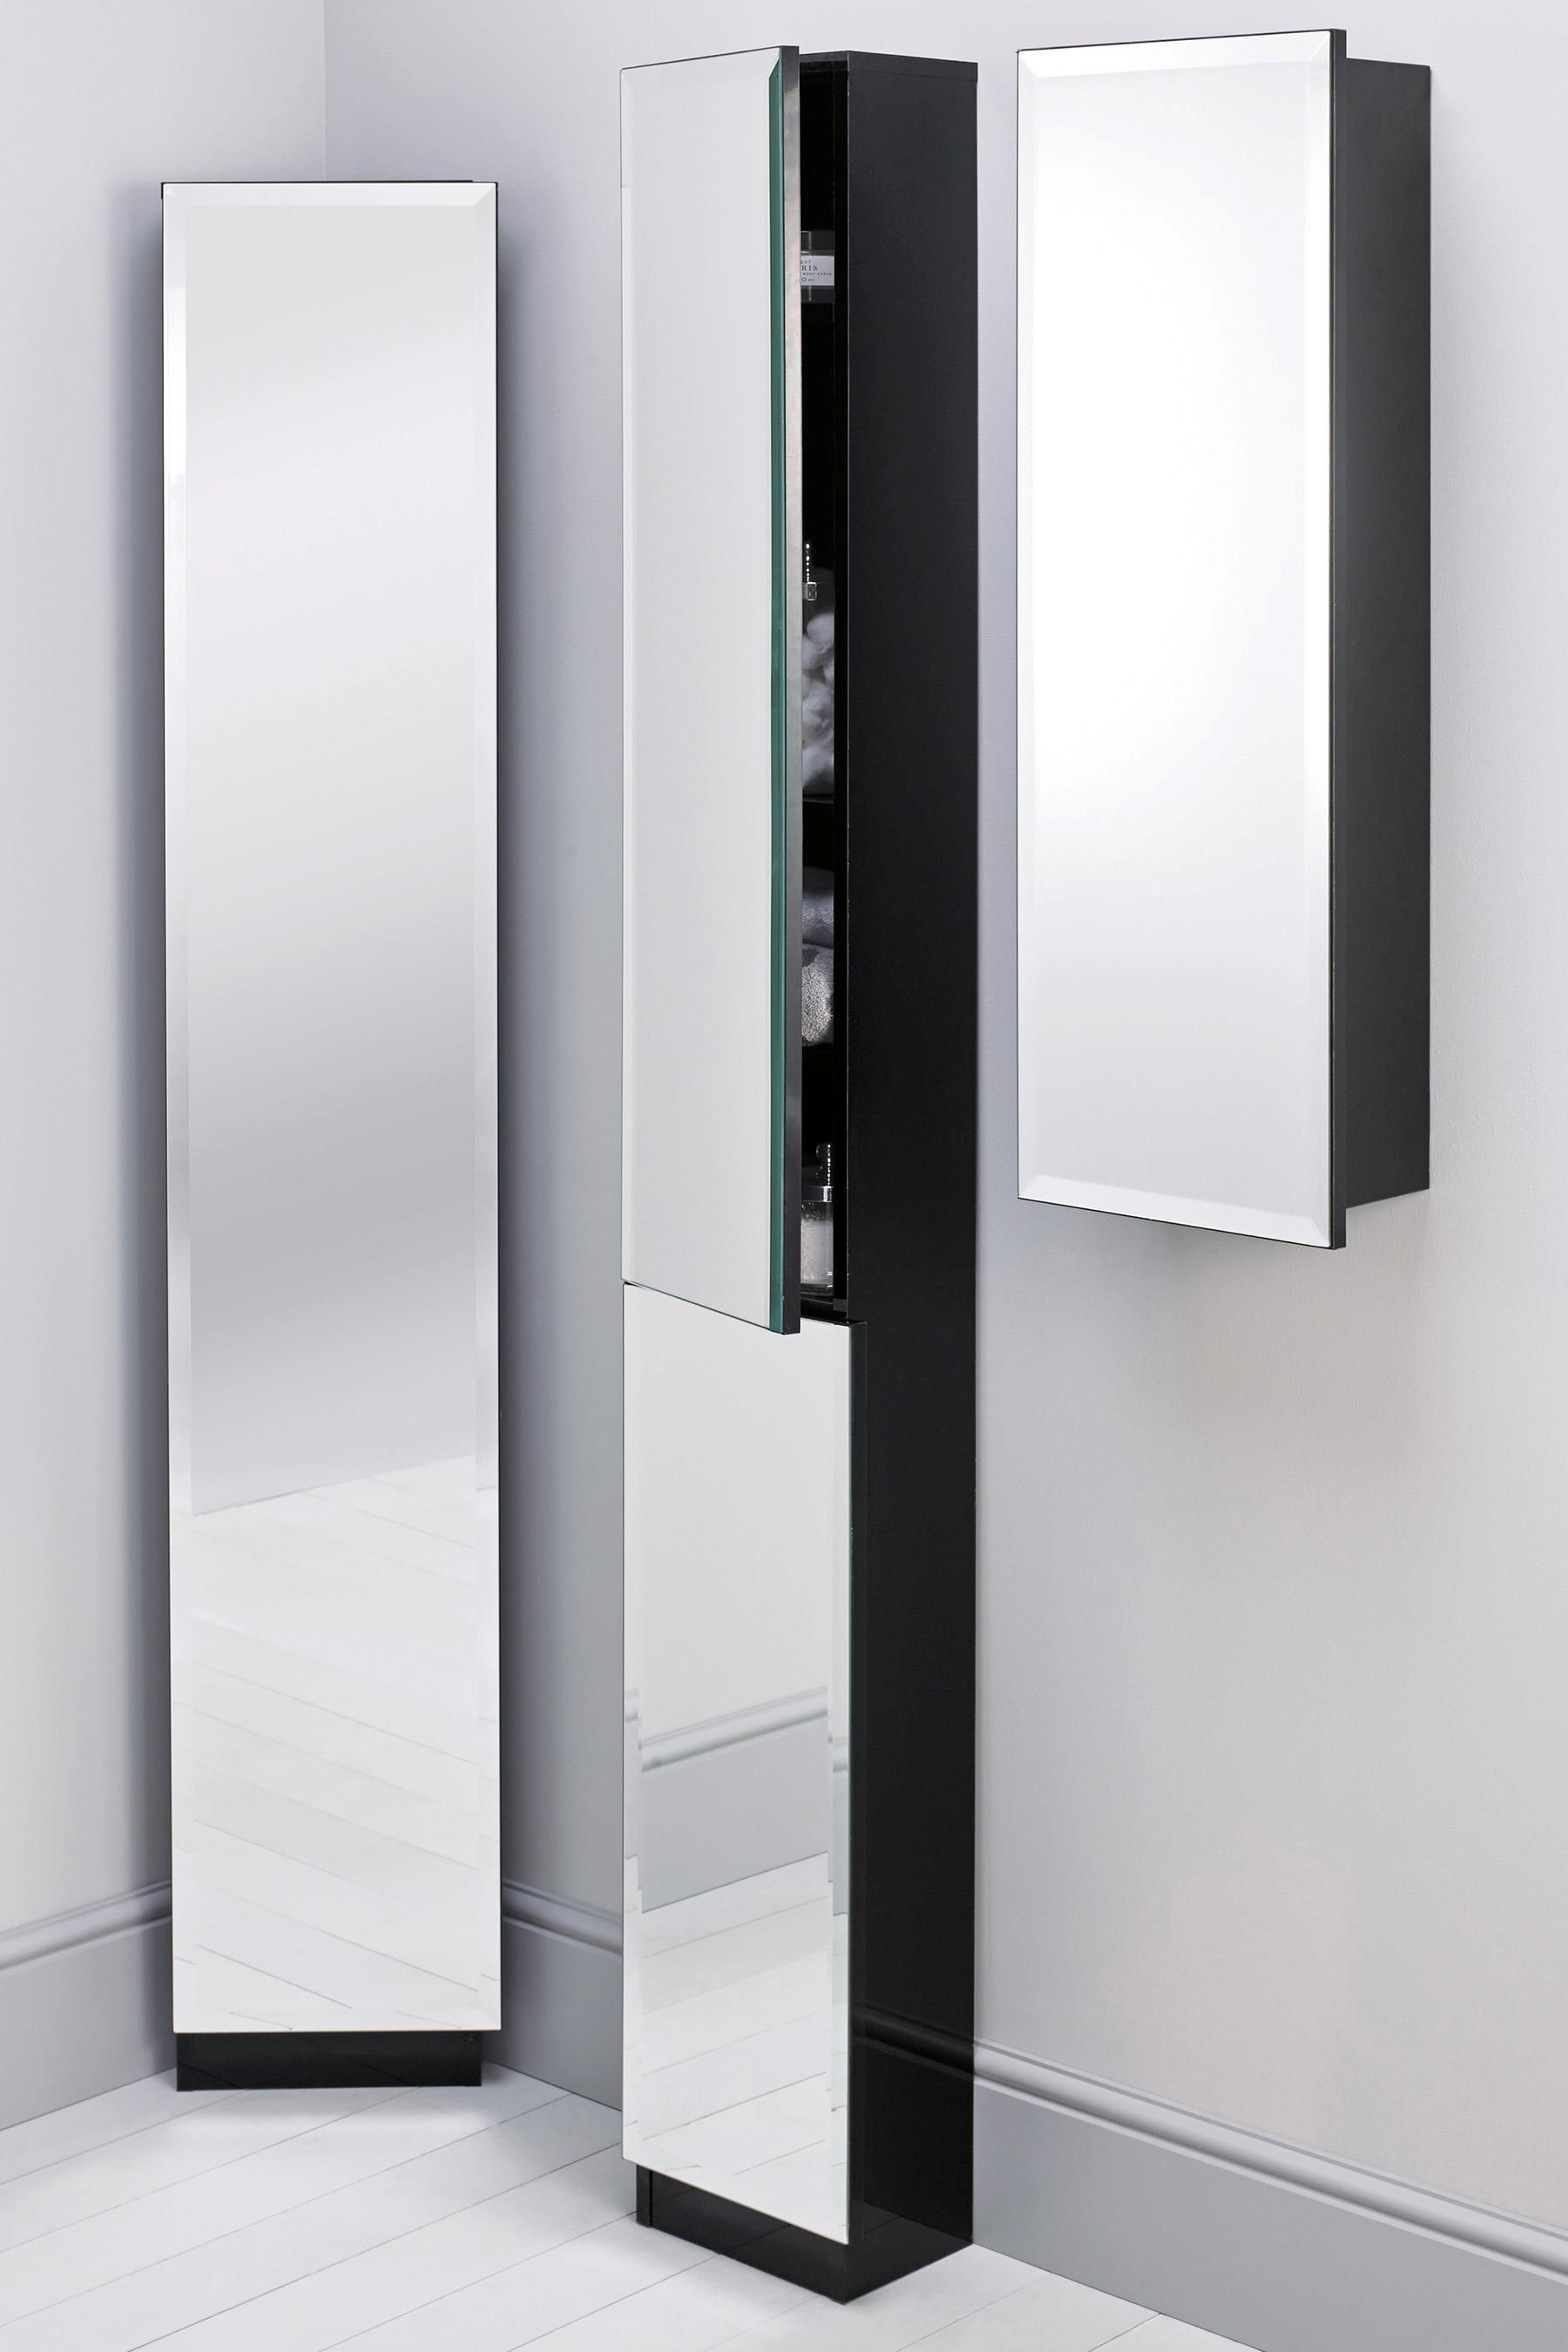 Permalink to Tall Bathroom Cabinet Mirror Door